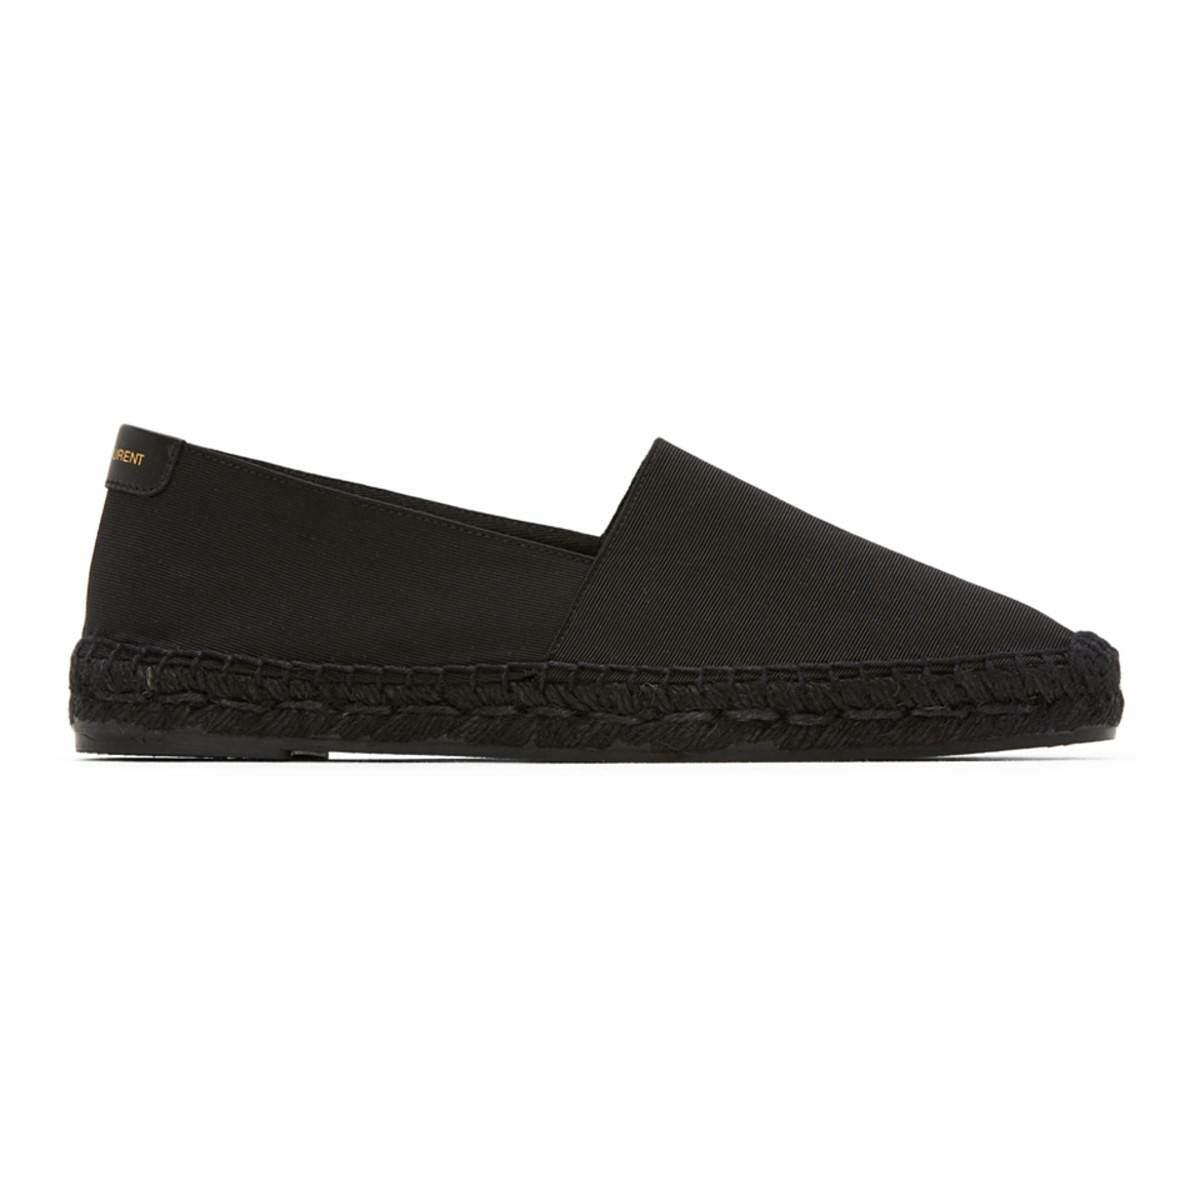 Saint Laurent Black Ottoman Espadrilles Ssense USA MEN Men SHOES Mens LOAFERS